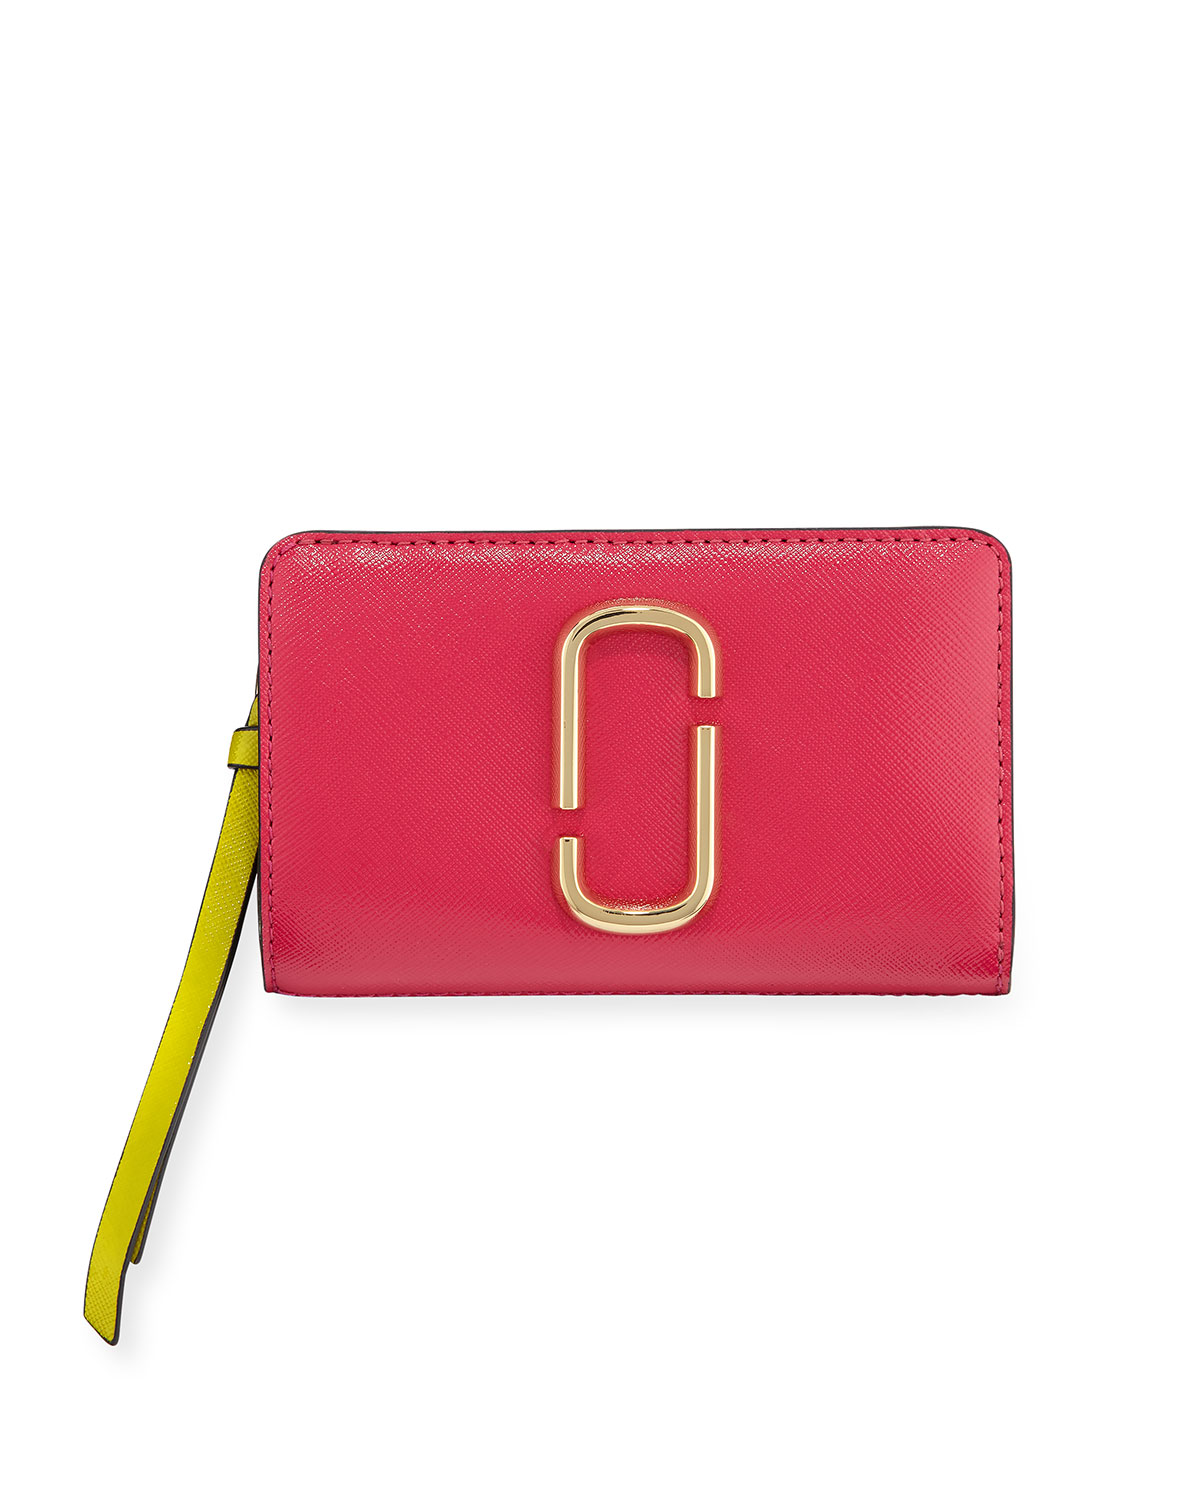 b1f97addc Marc Jacobs Compact Colorblock Leather Wallet | Neiman Marcus